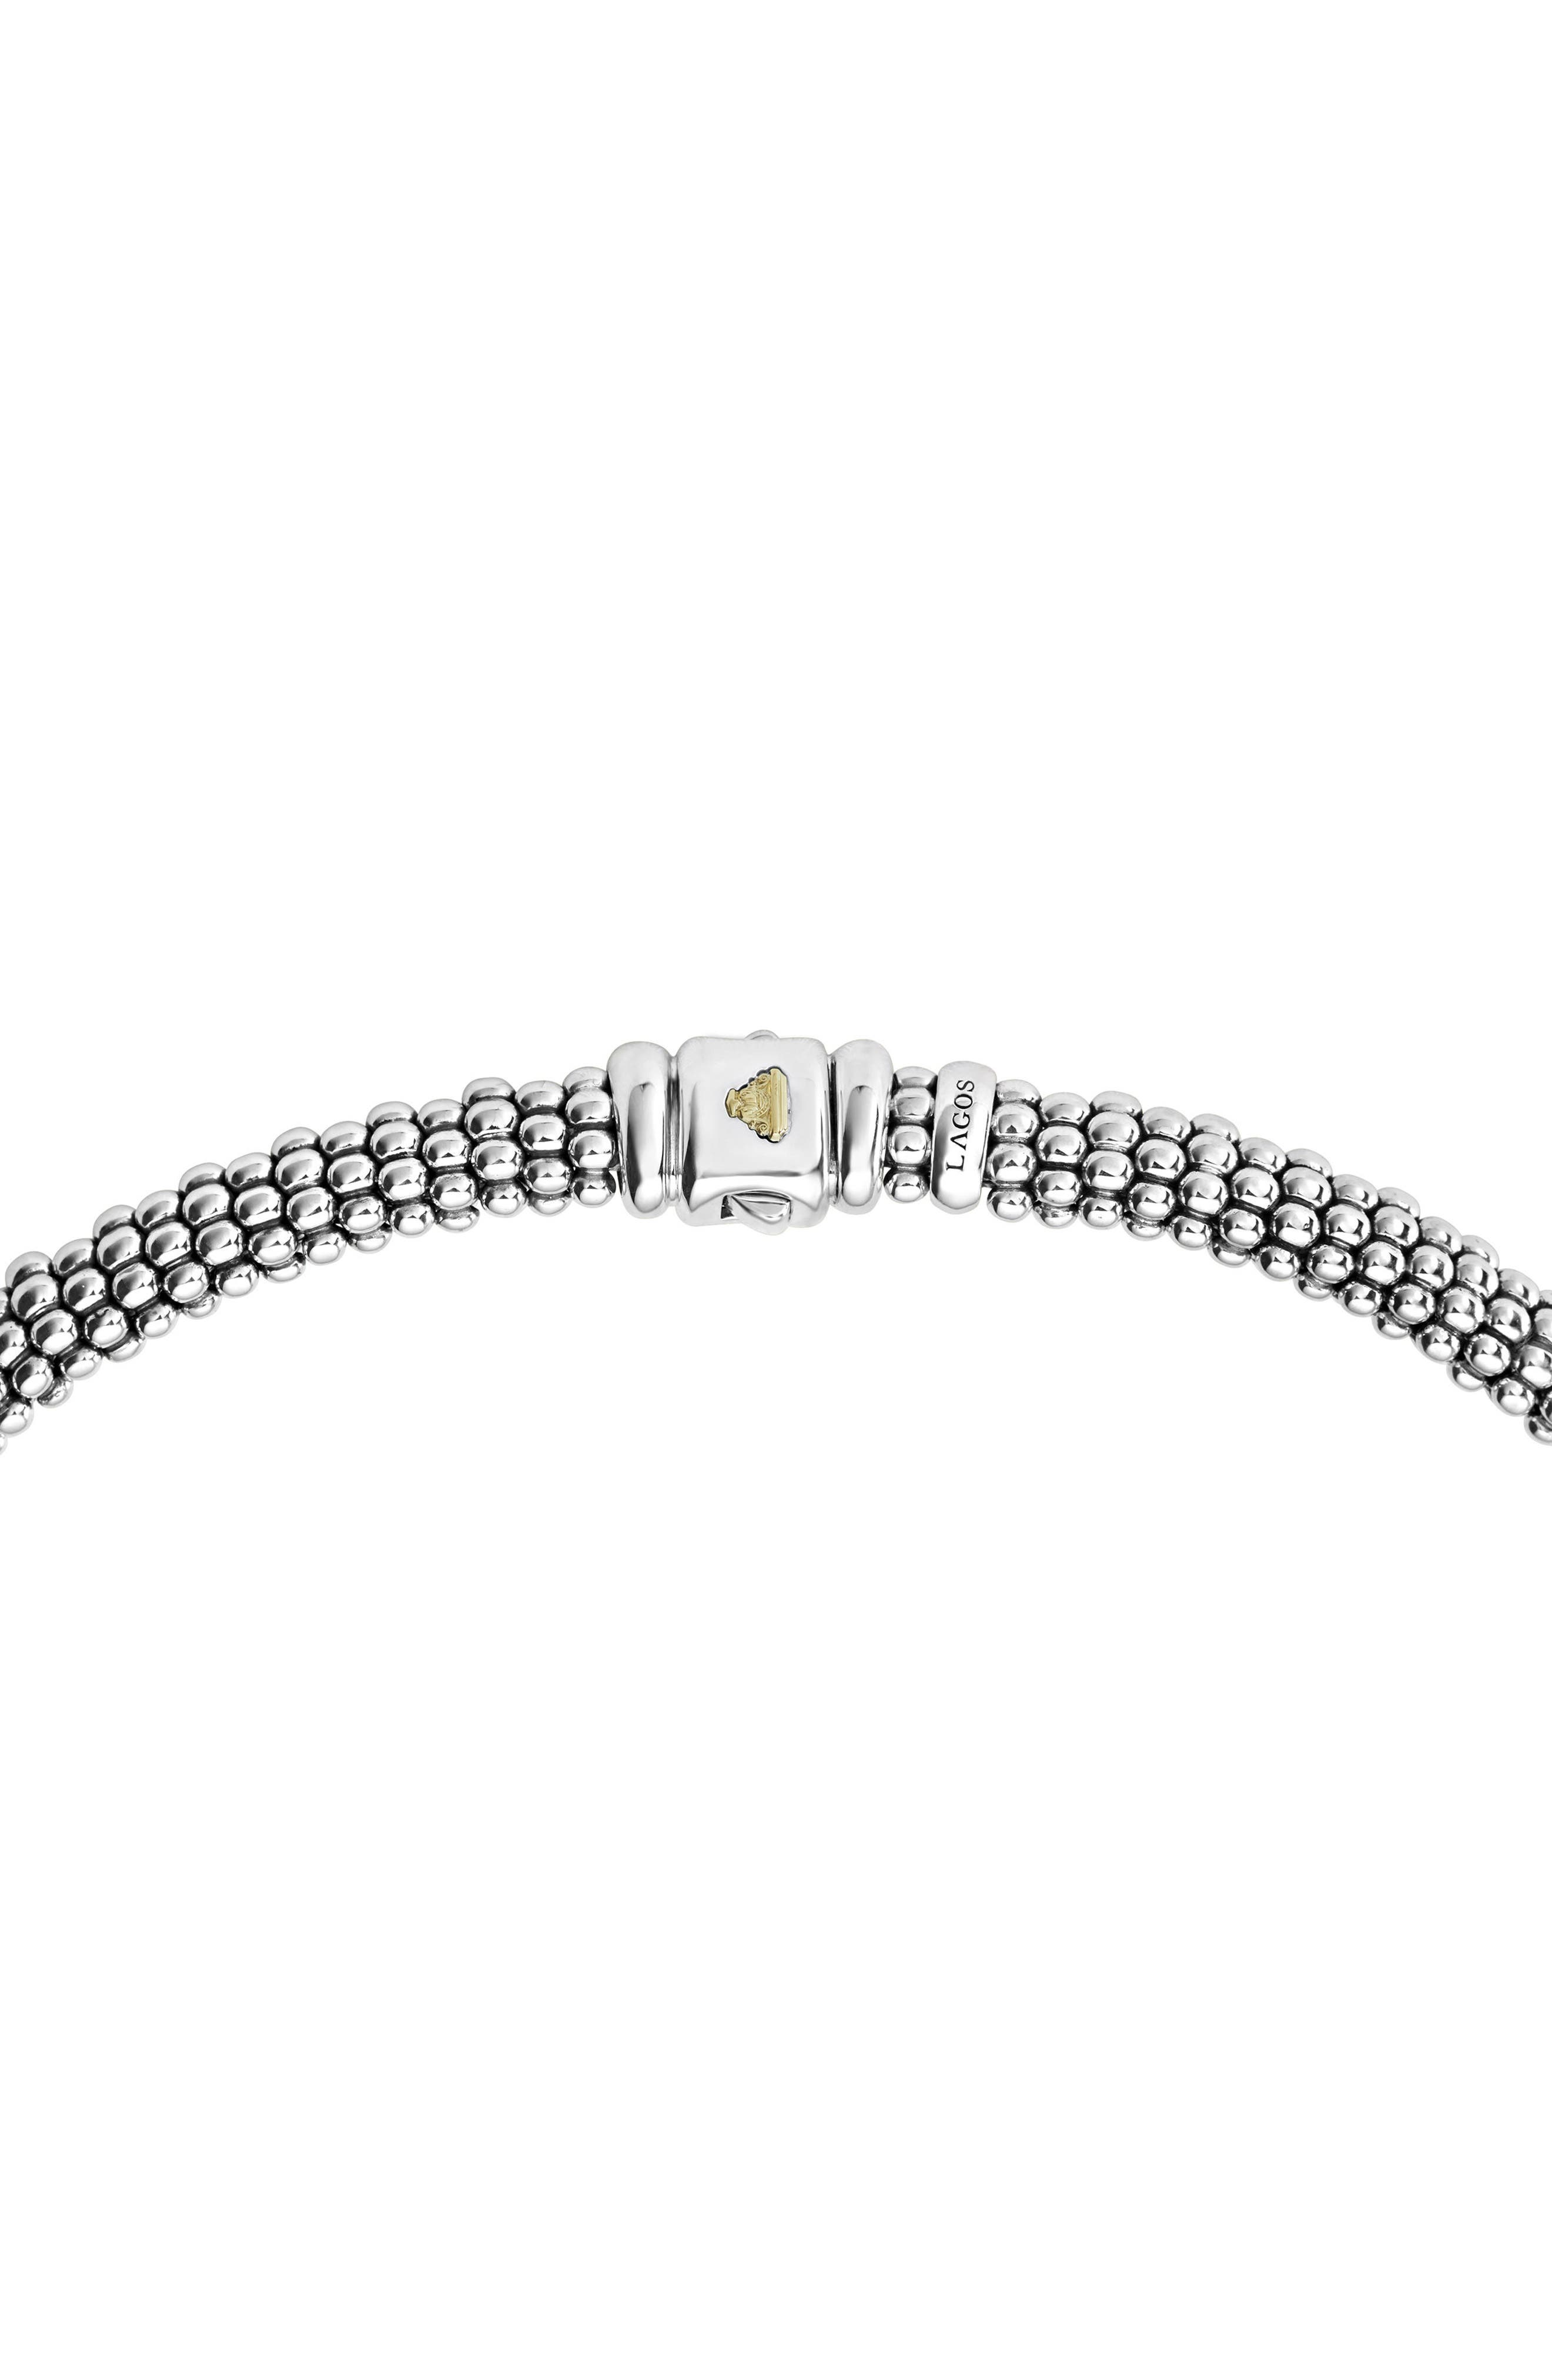 Diamond Lux Station Collar Necklace,                             Alternate thumbnail 3, color,                             SILVER/ DIAMOND